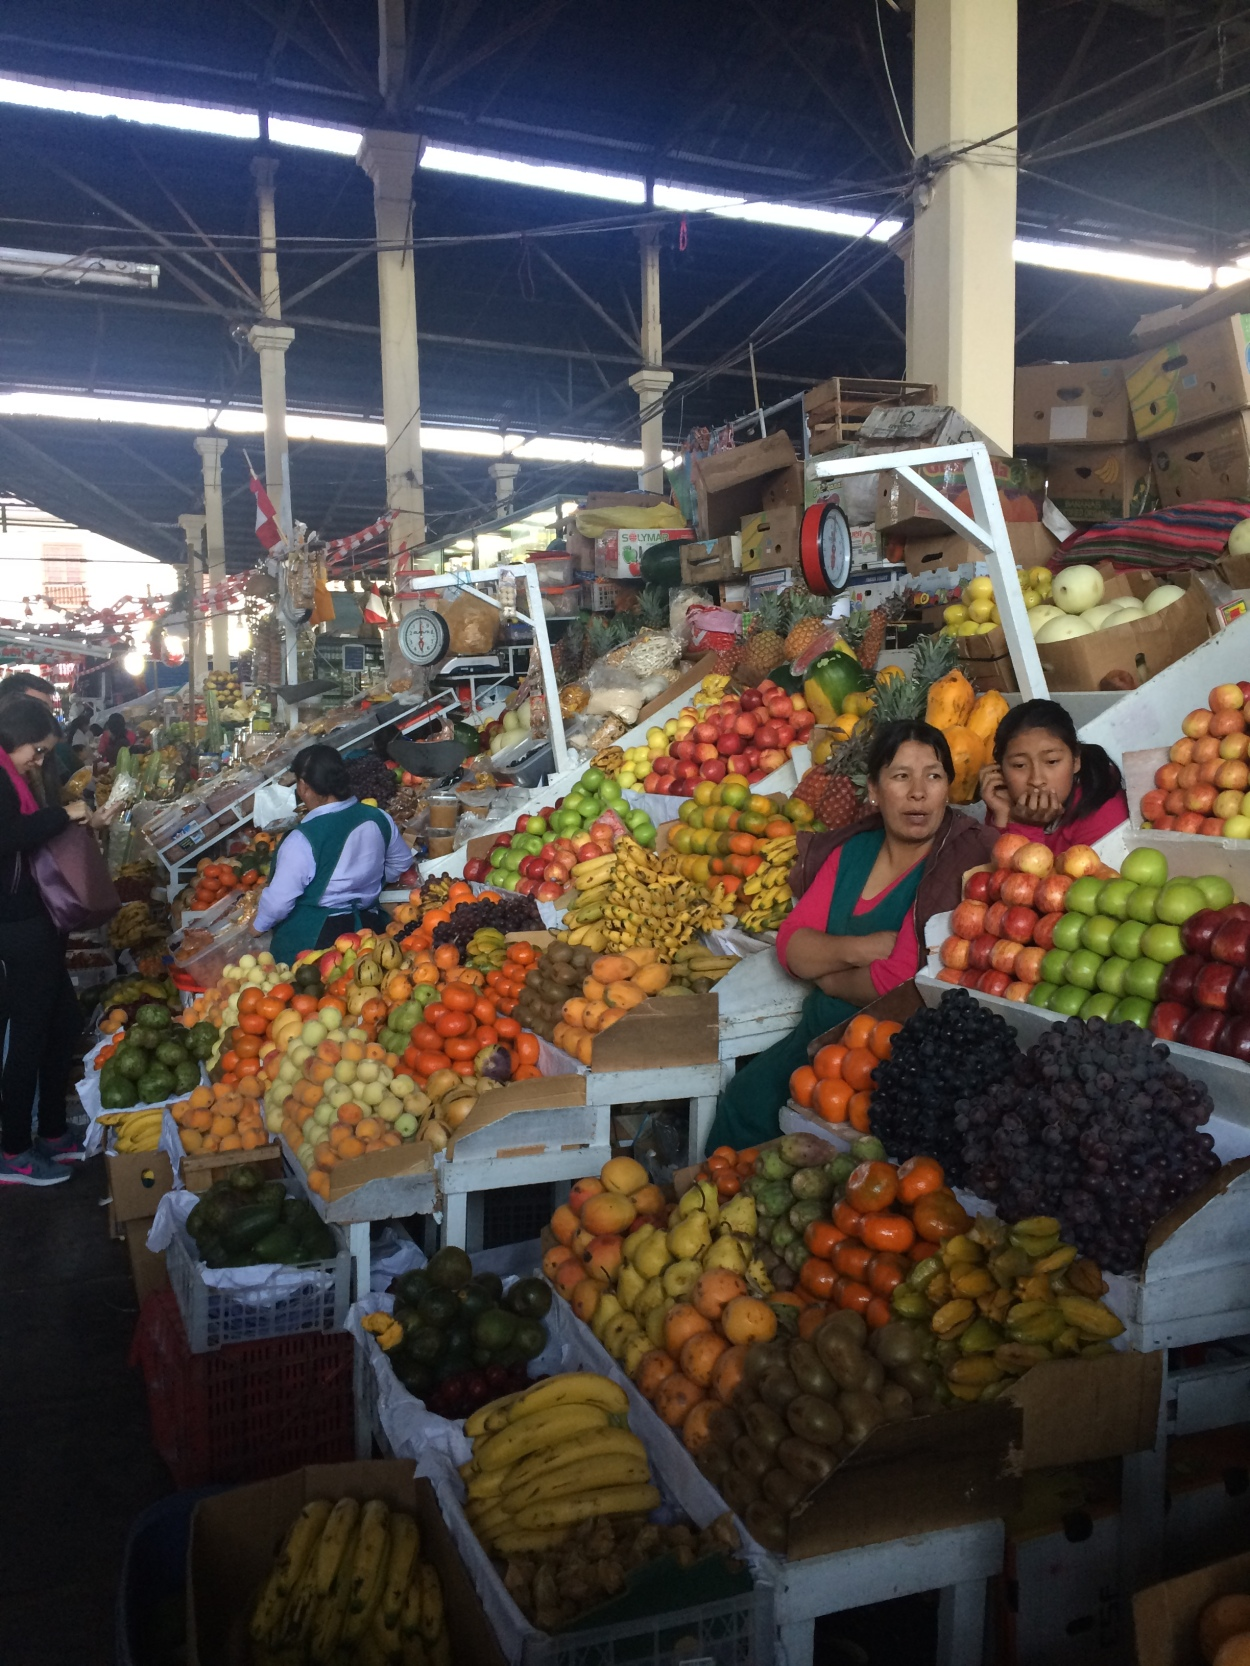 Sampling new fruits at a market in Cusco